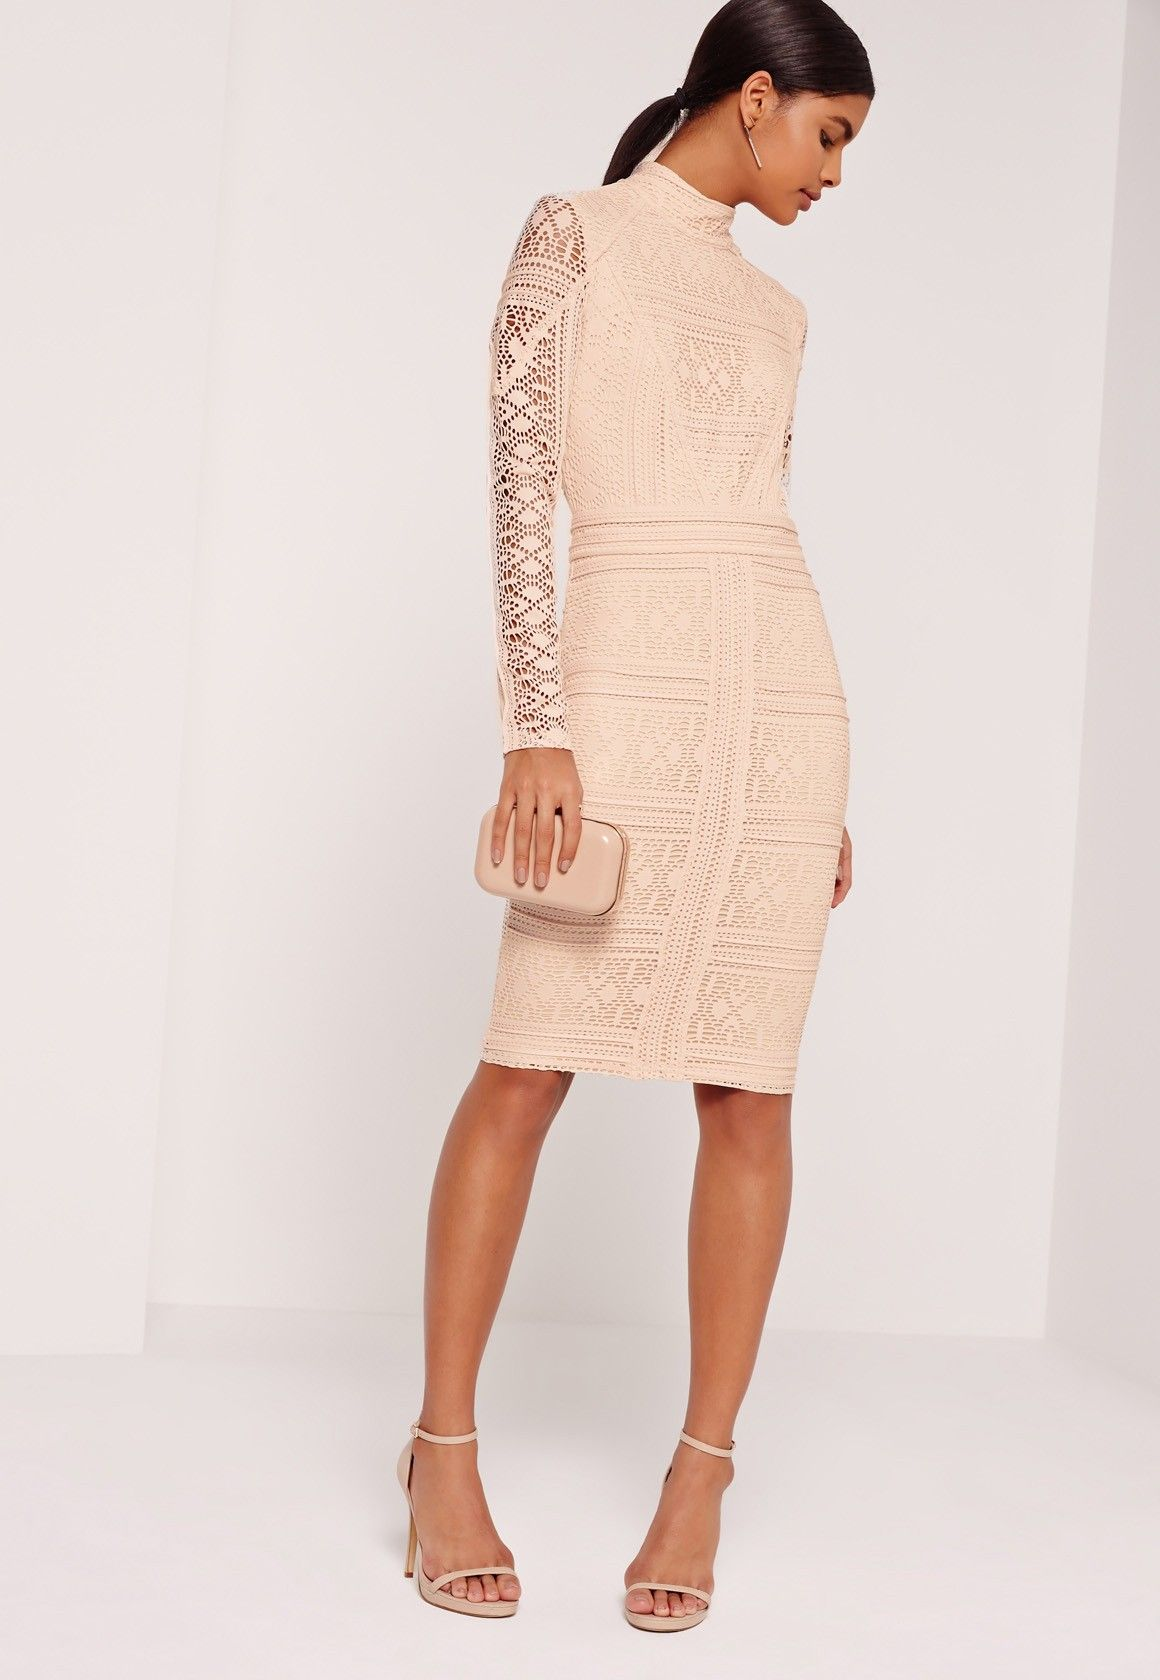 5b6cd41a0384b Missguided - Lace Long Sleeve High Neck Midi Dress Nude | wedding ...